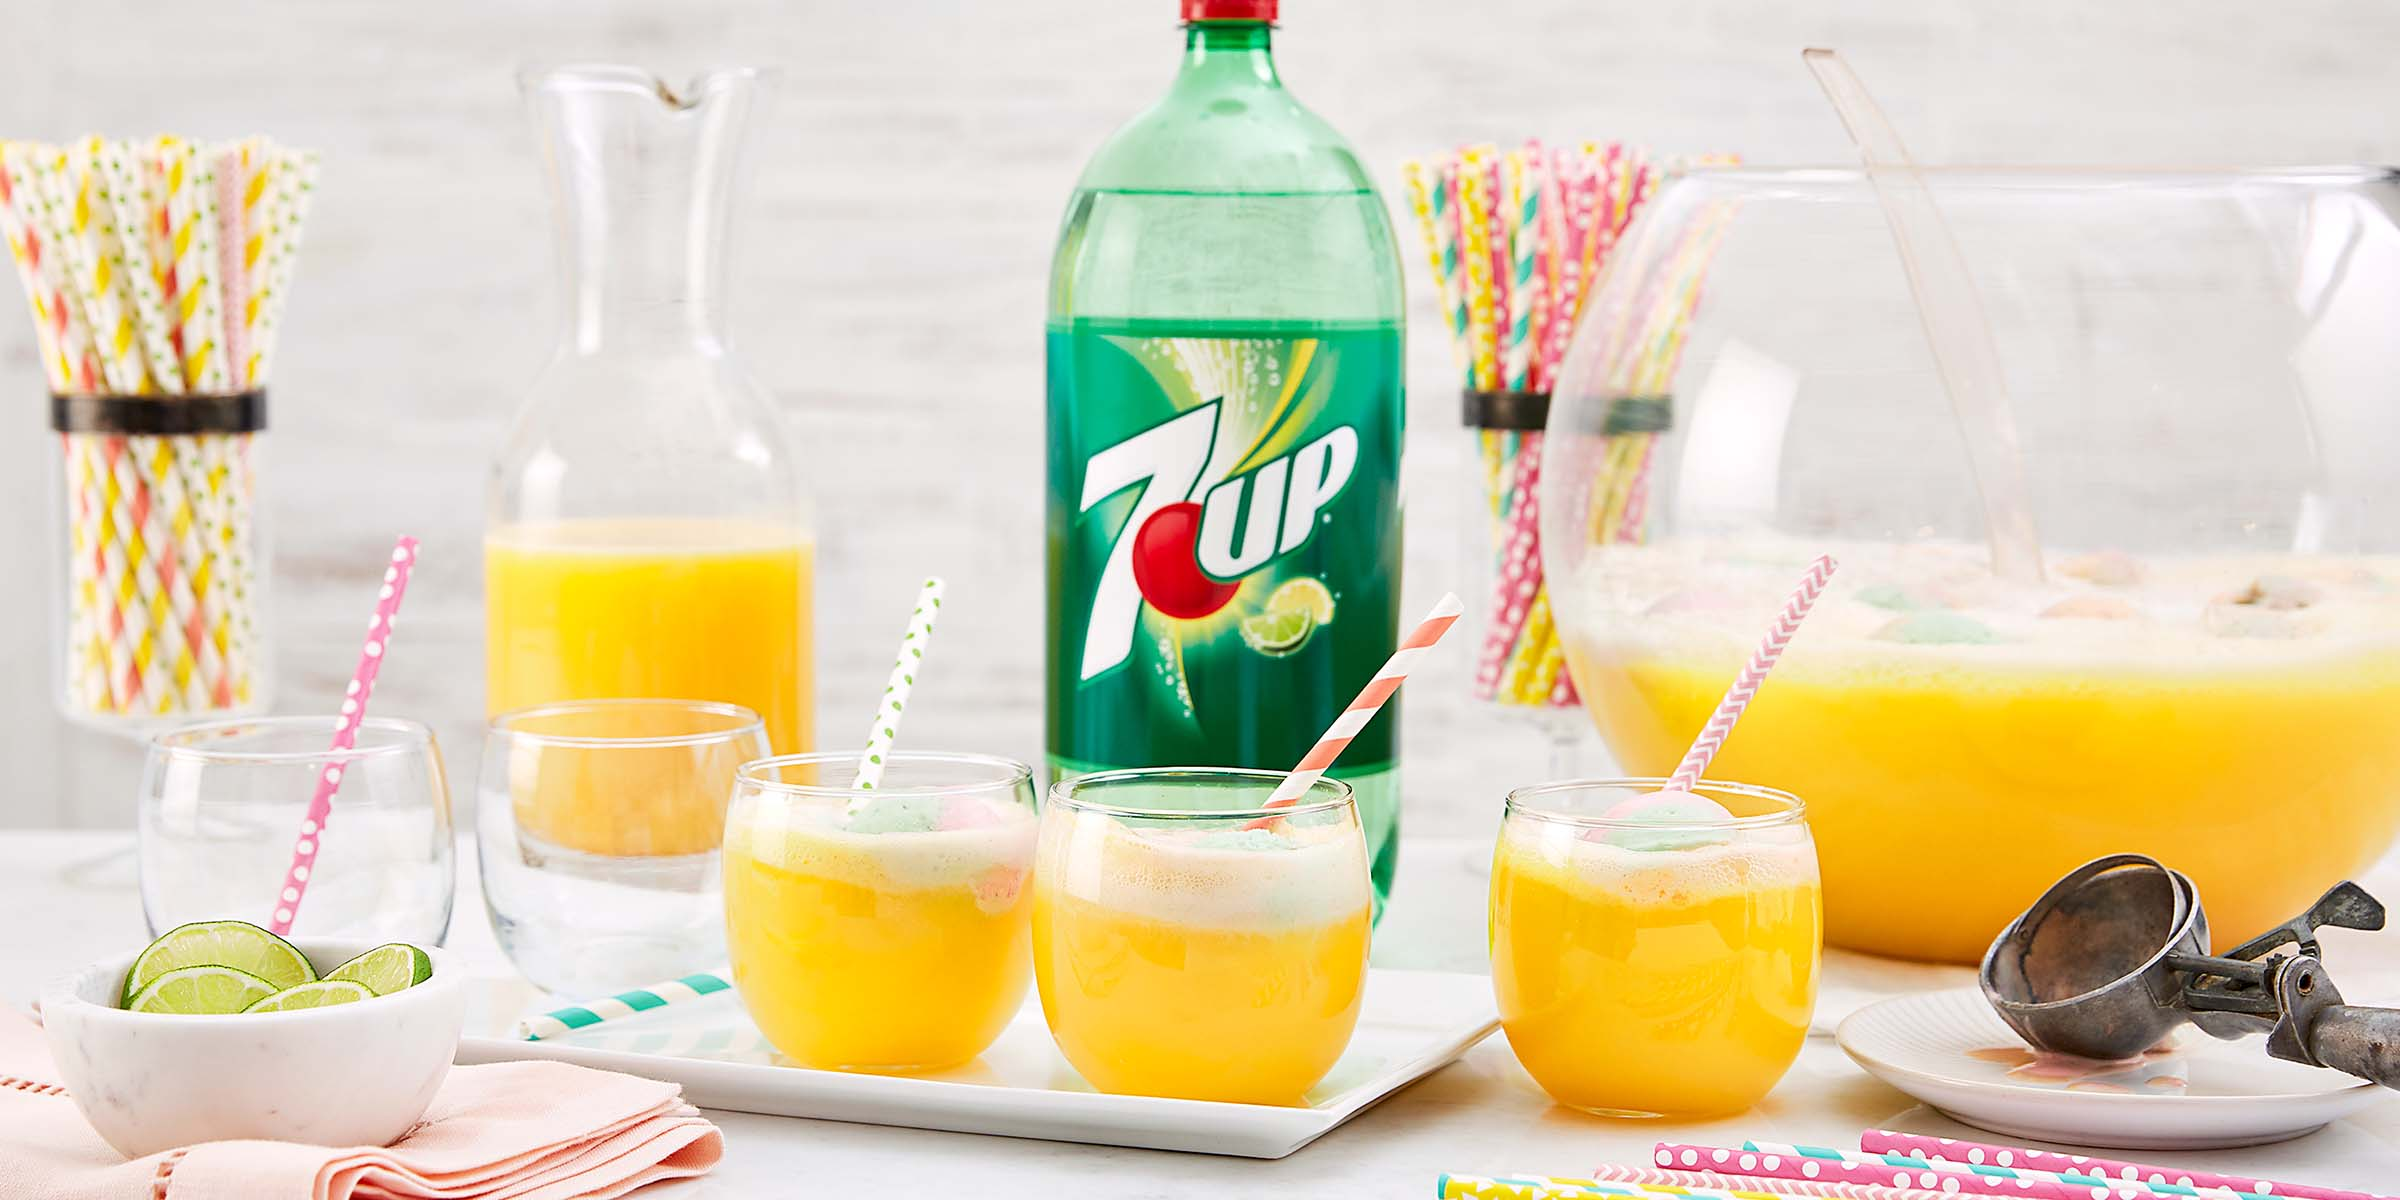 7up sherbet punch 7up for 7 and 7 drink recipe